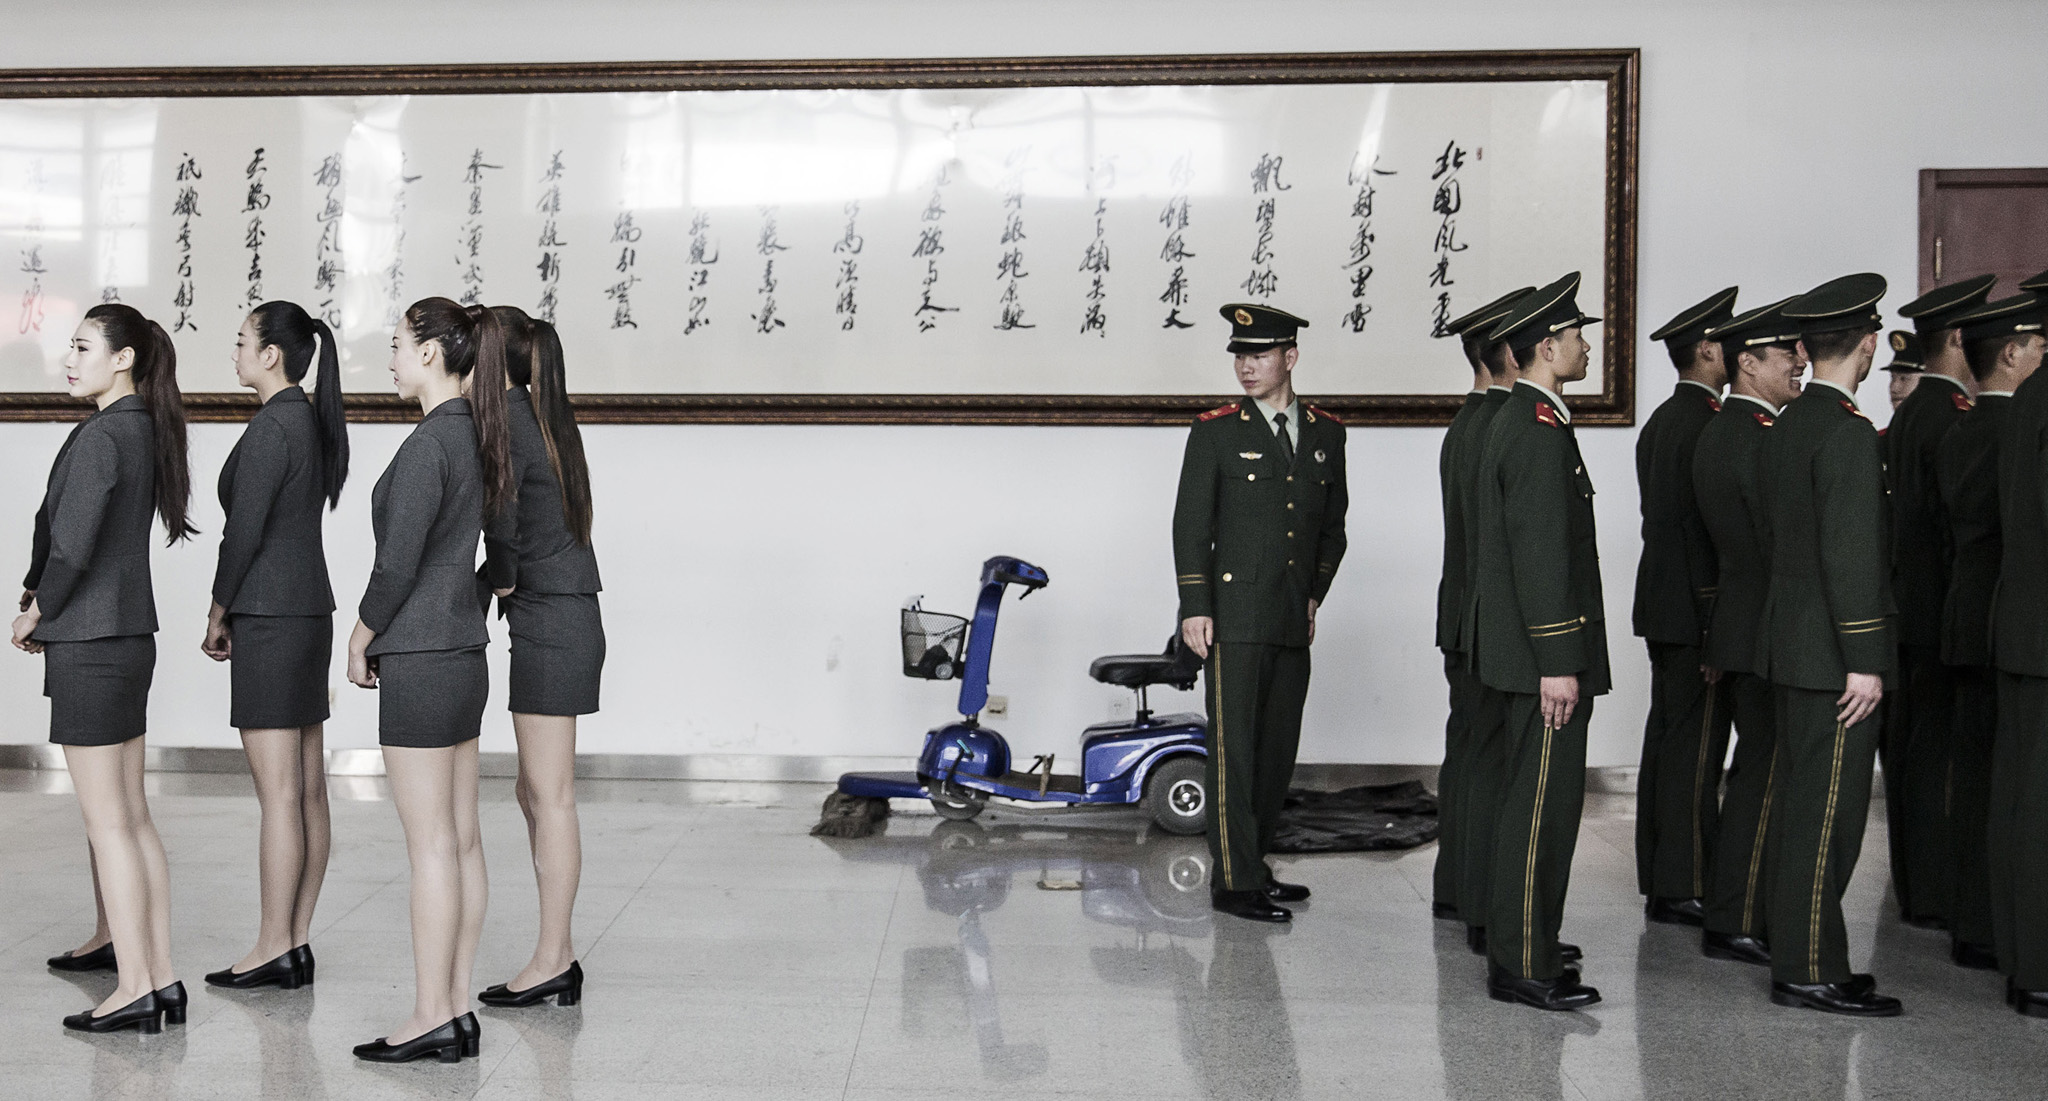 Inside The Beijing International Automotive Exhibition...A paramilitary police officer (right) turns around as hostesses line up for roll call ahead of the Beijing International Automotive Exhibition in Beijing, China, on Monday, April 25, 2016. Tesla Motors Inc. and BYD Co. are among manufacturers showing 147 new-energy vehicles at this year's show.